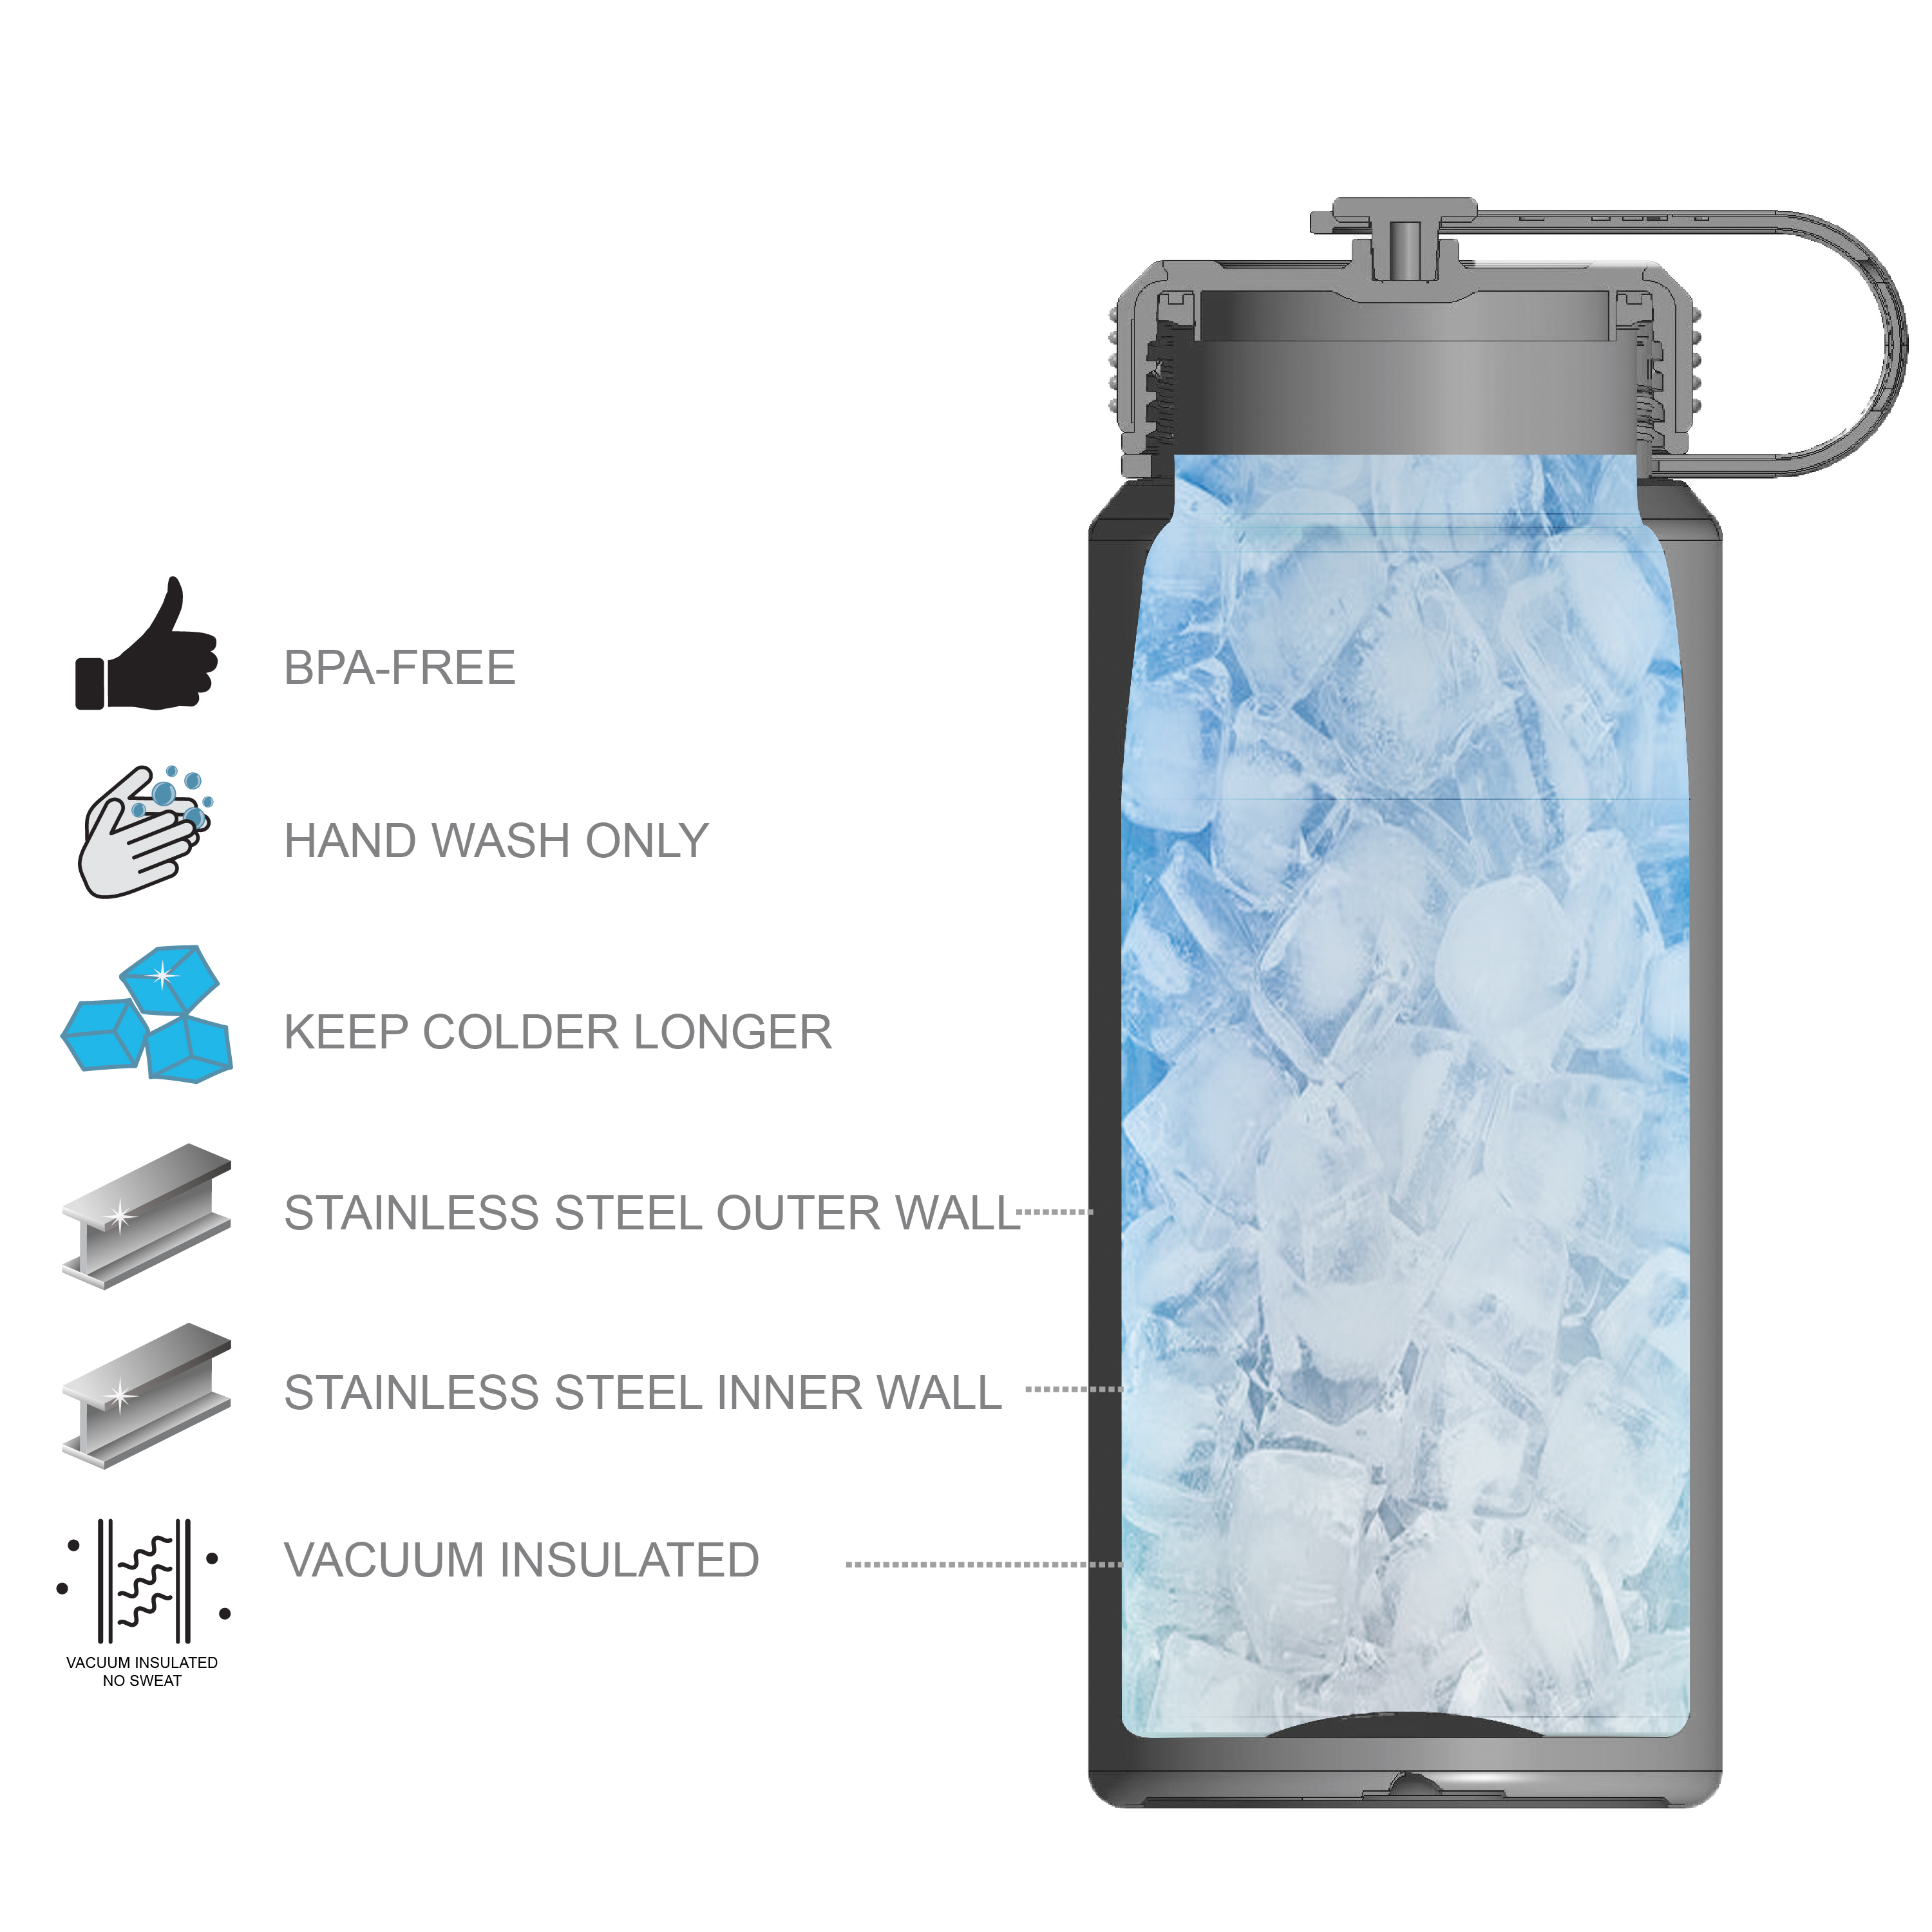 Xbox 24 ounce Stainless Steel Insulated Water Bottle, For the Win slideshow image 6